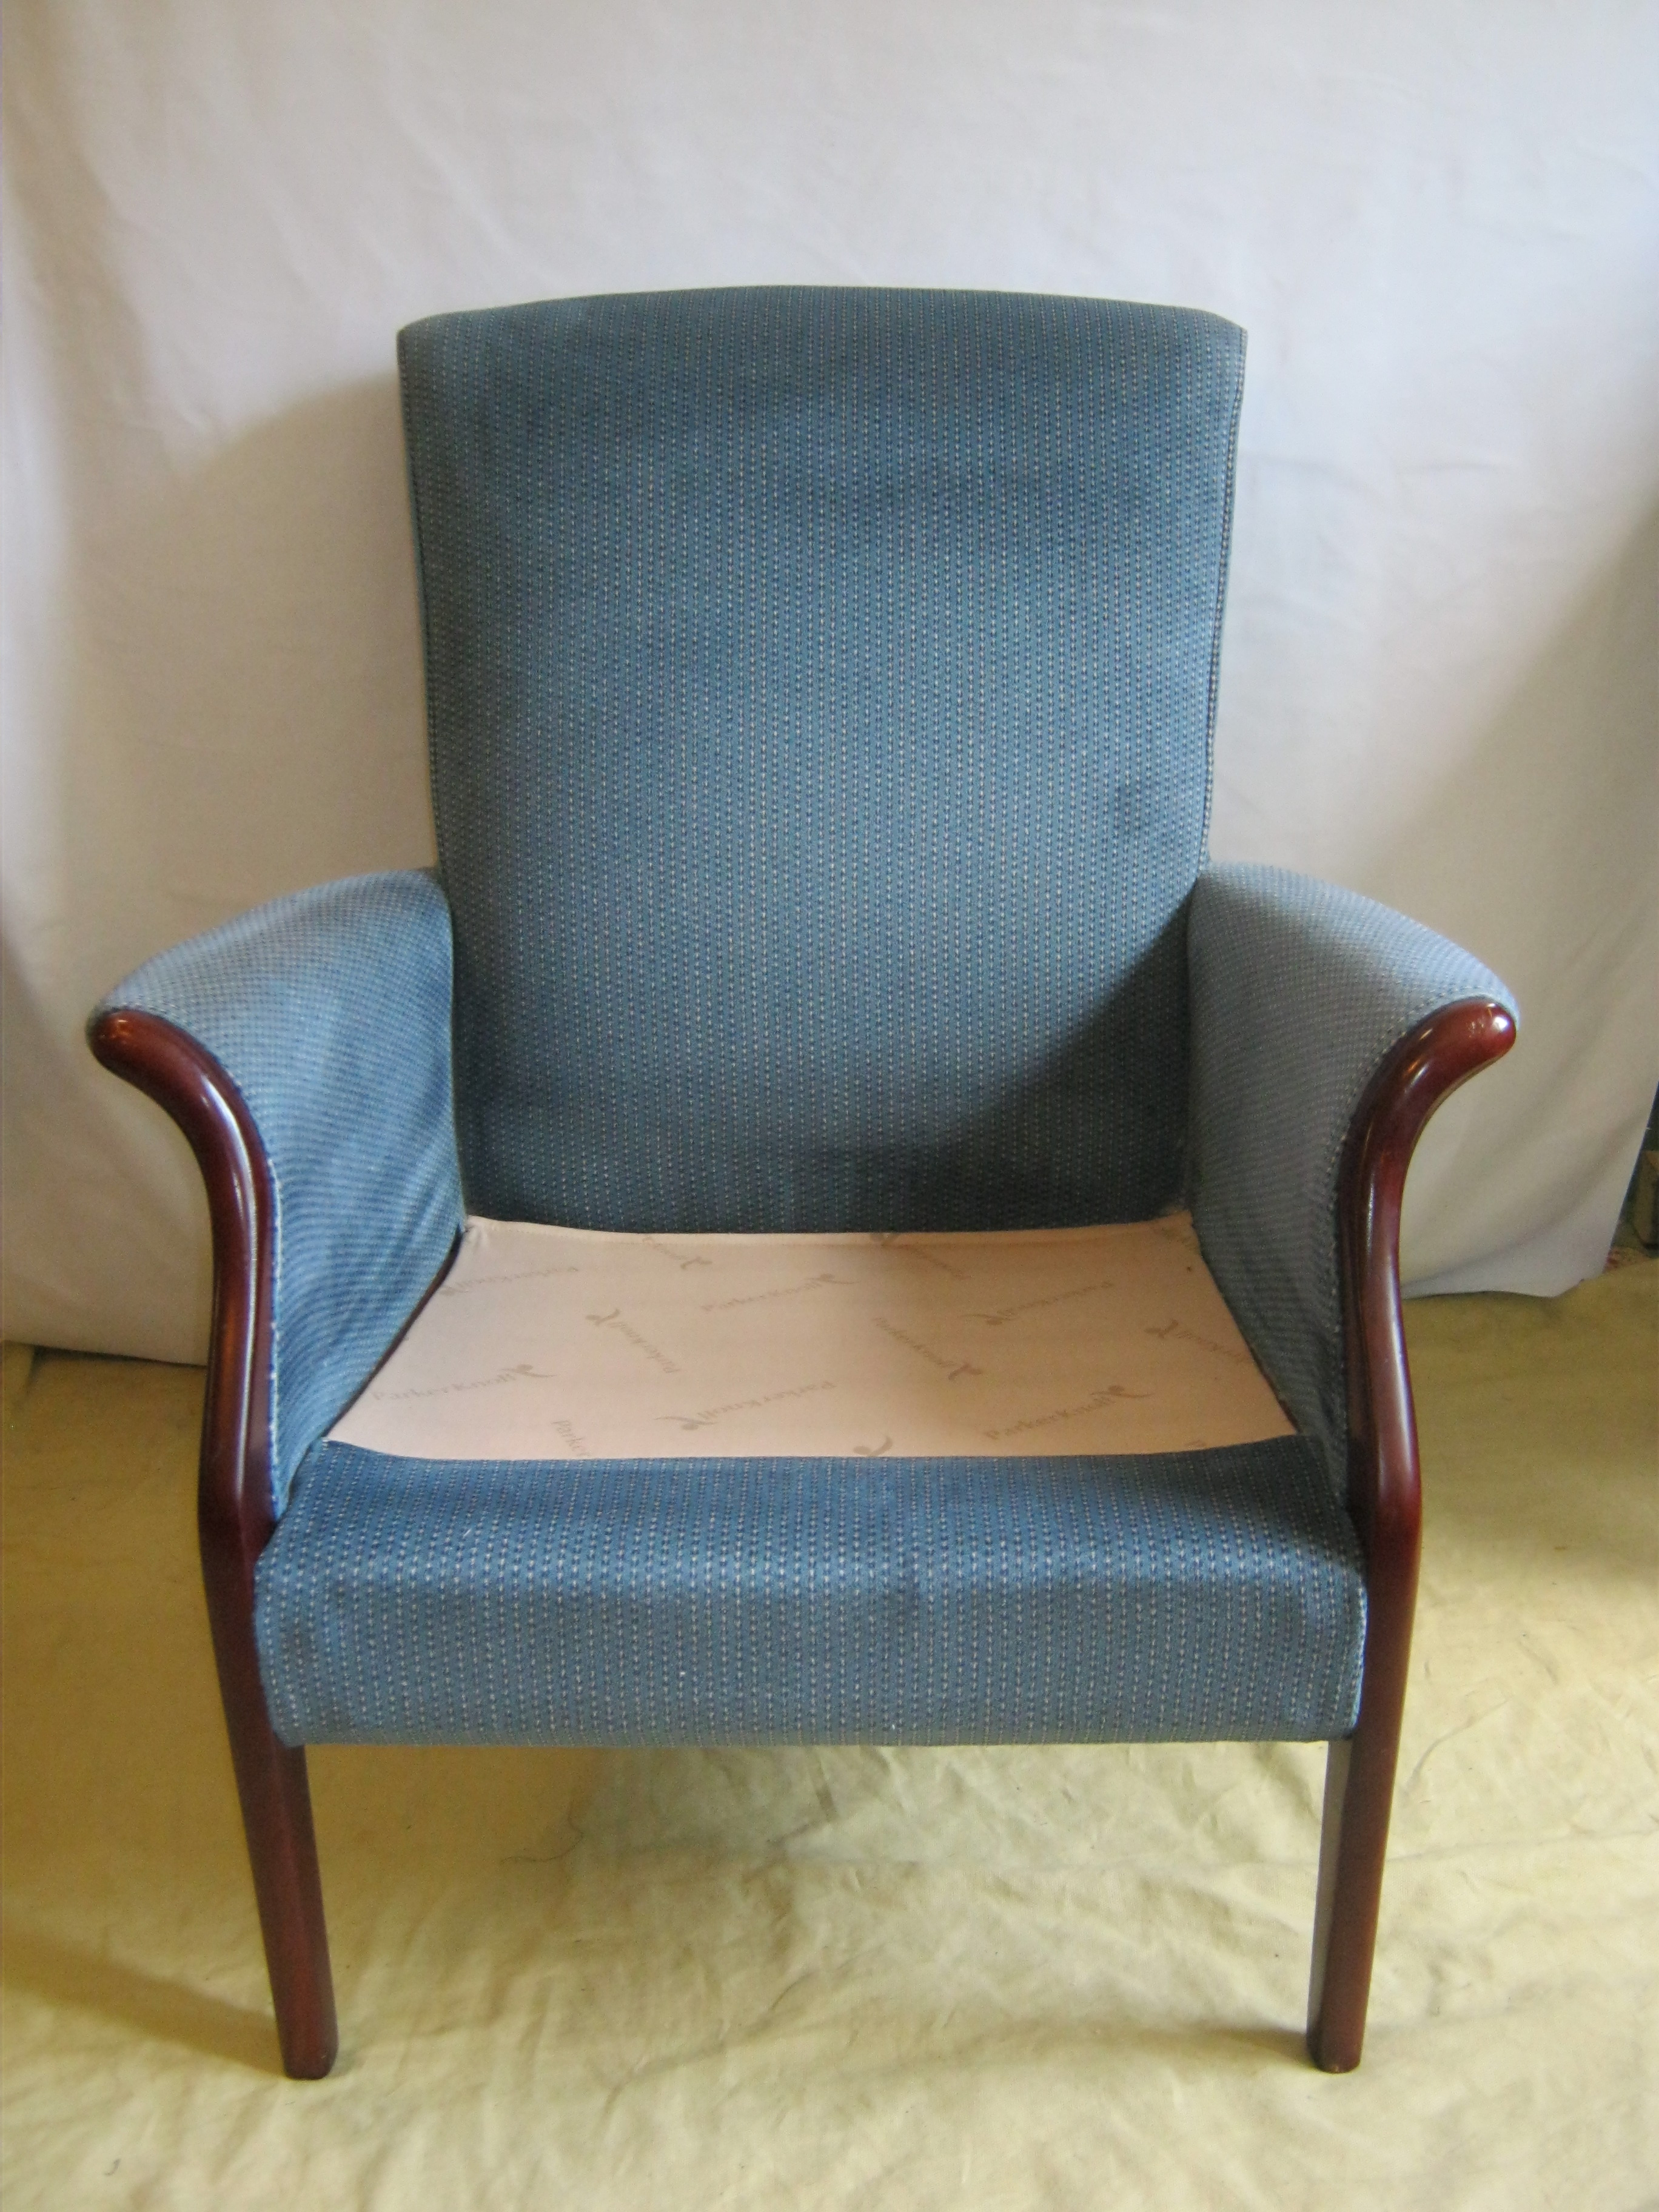 Froxfield arm chair. Before